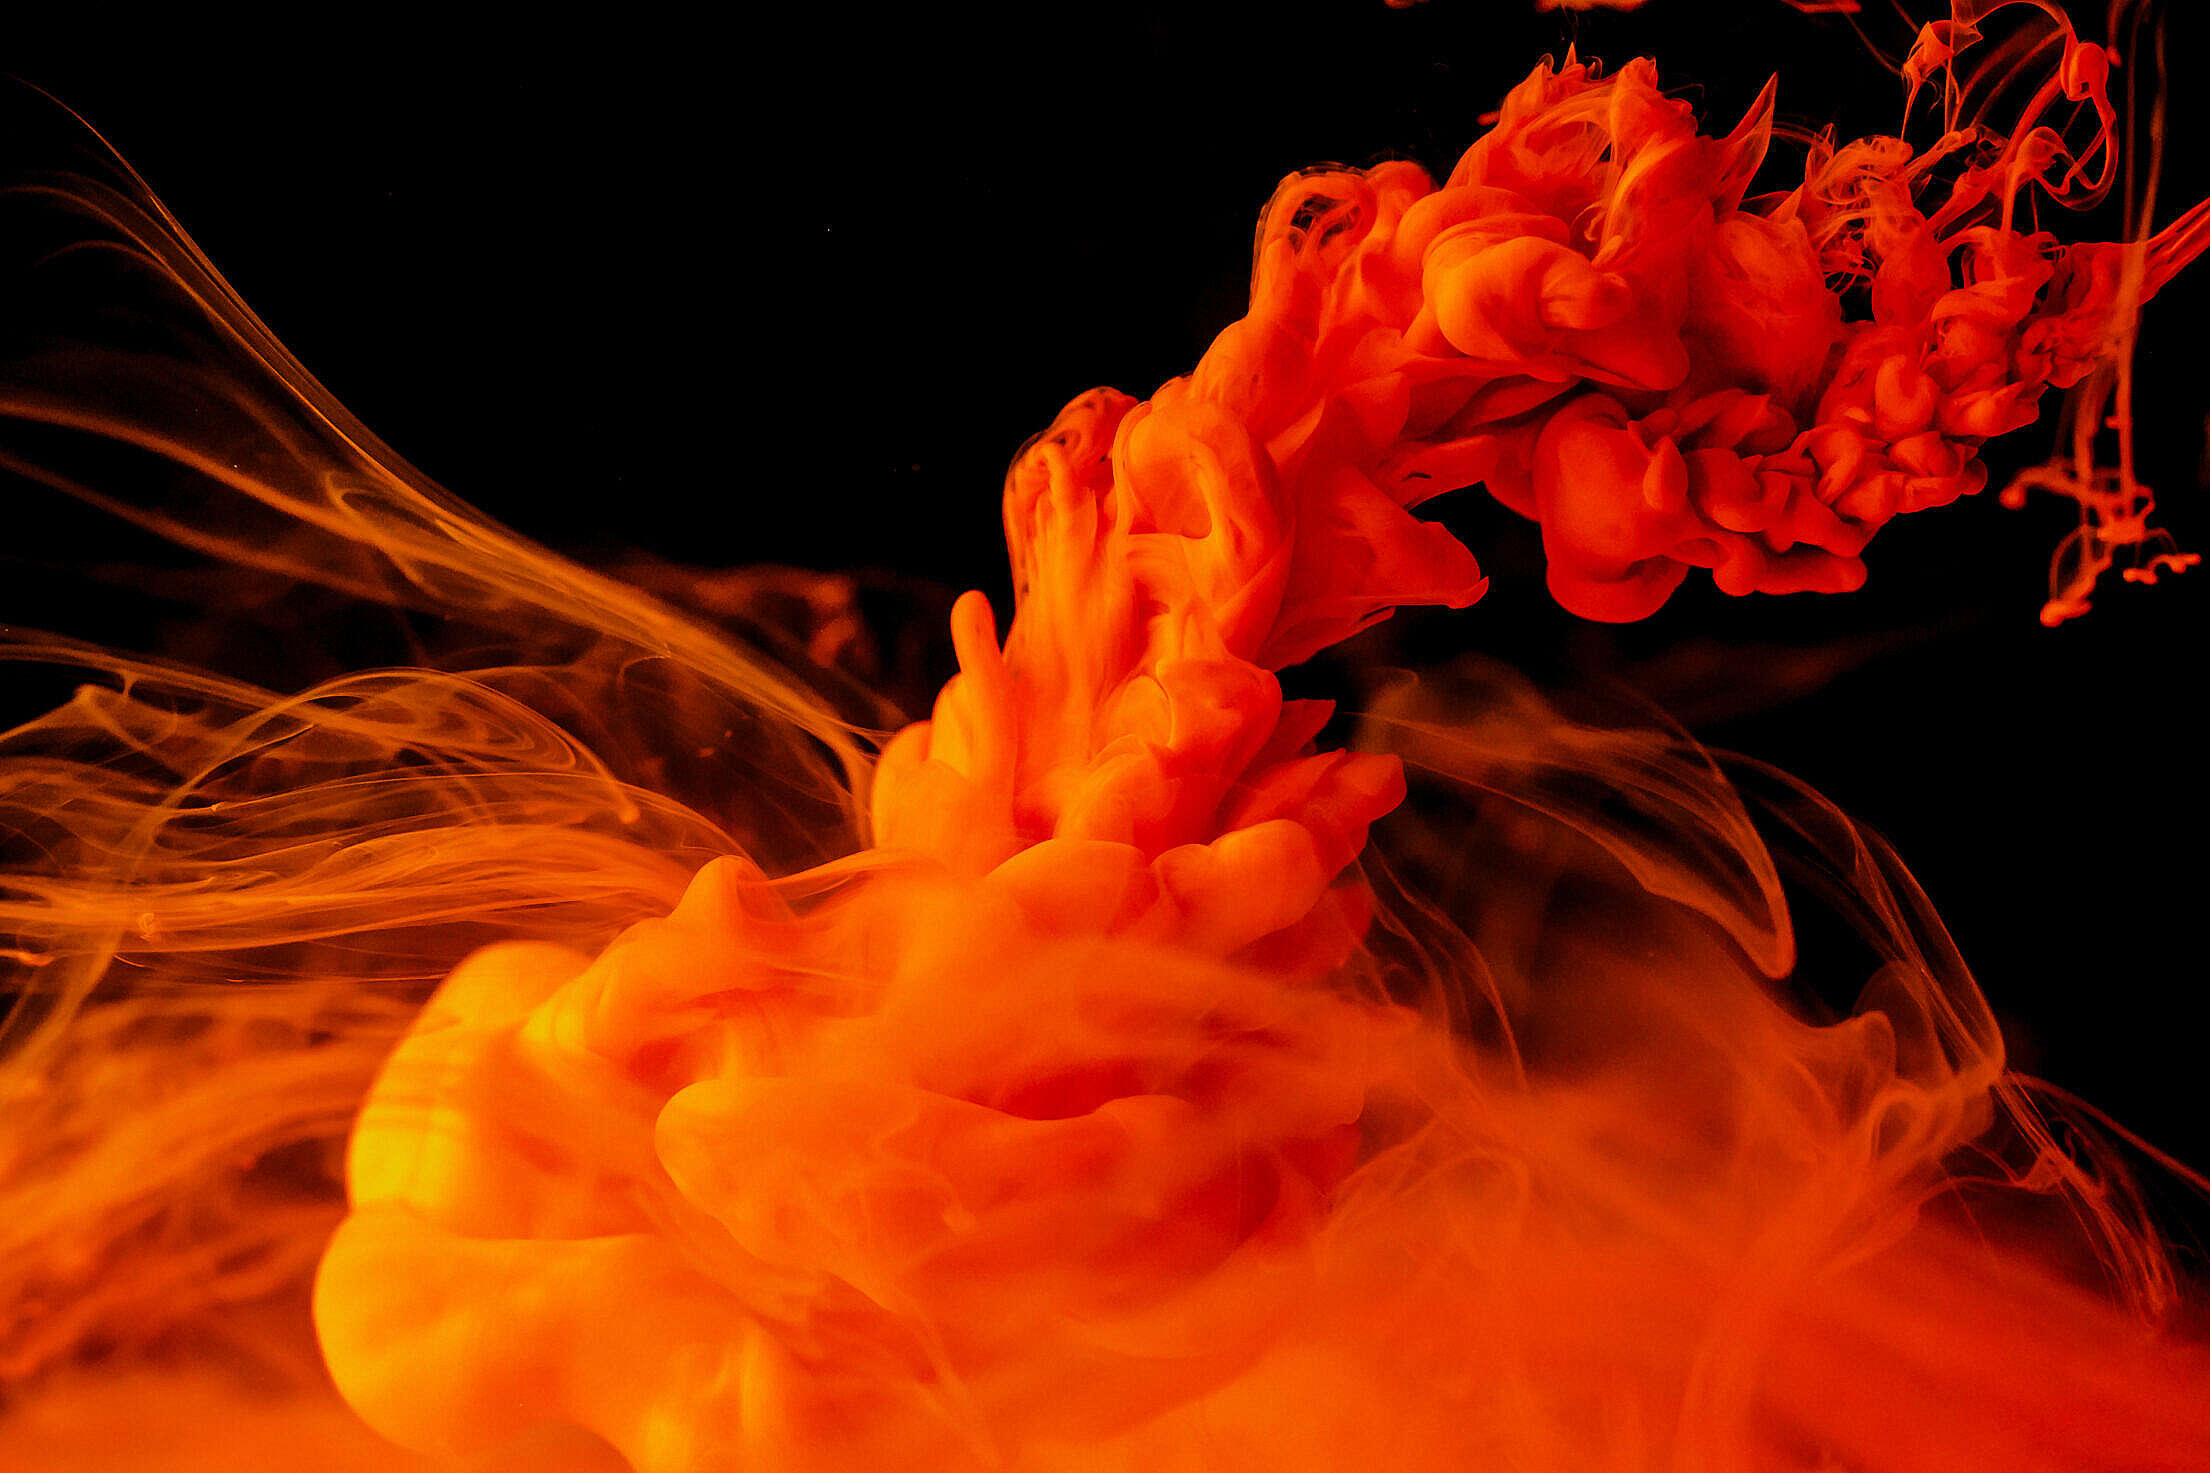 Abstract Red Ink Explosion Free Stock Photo